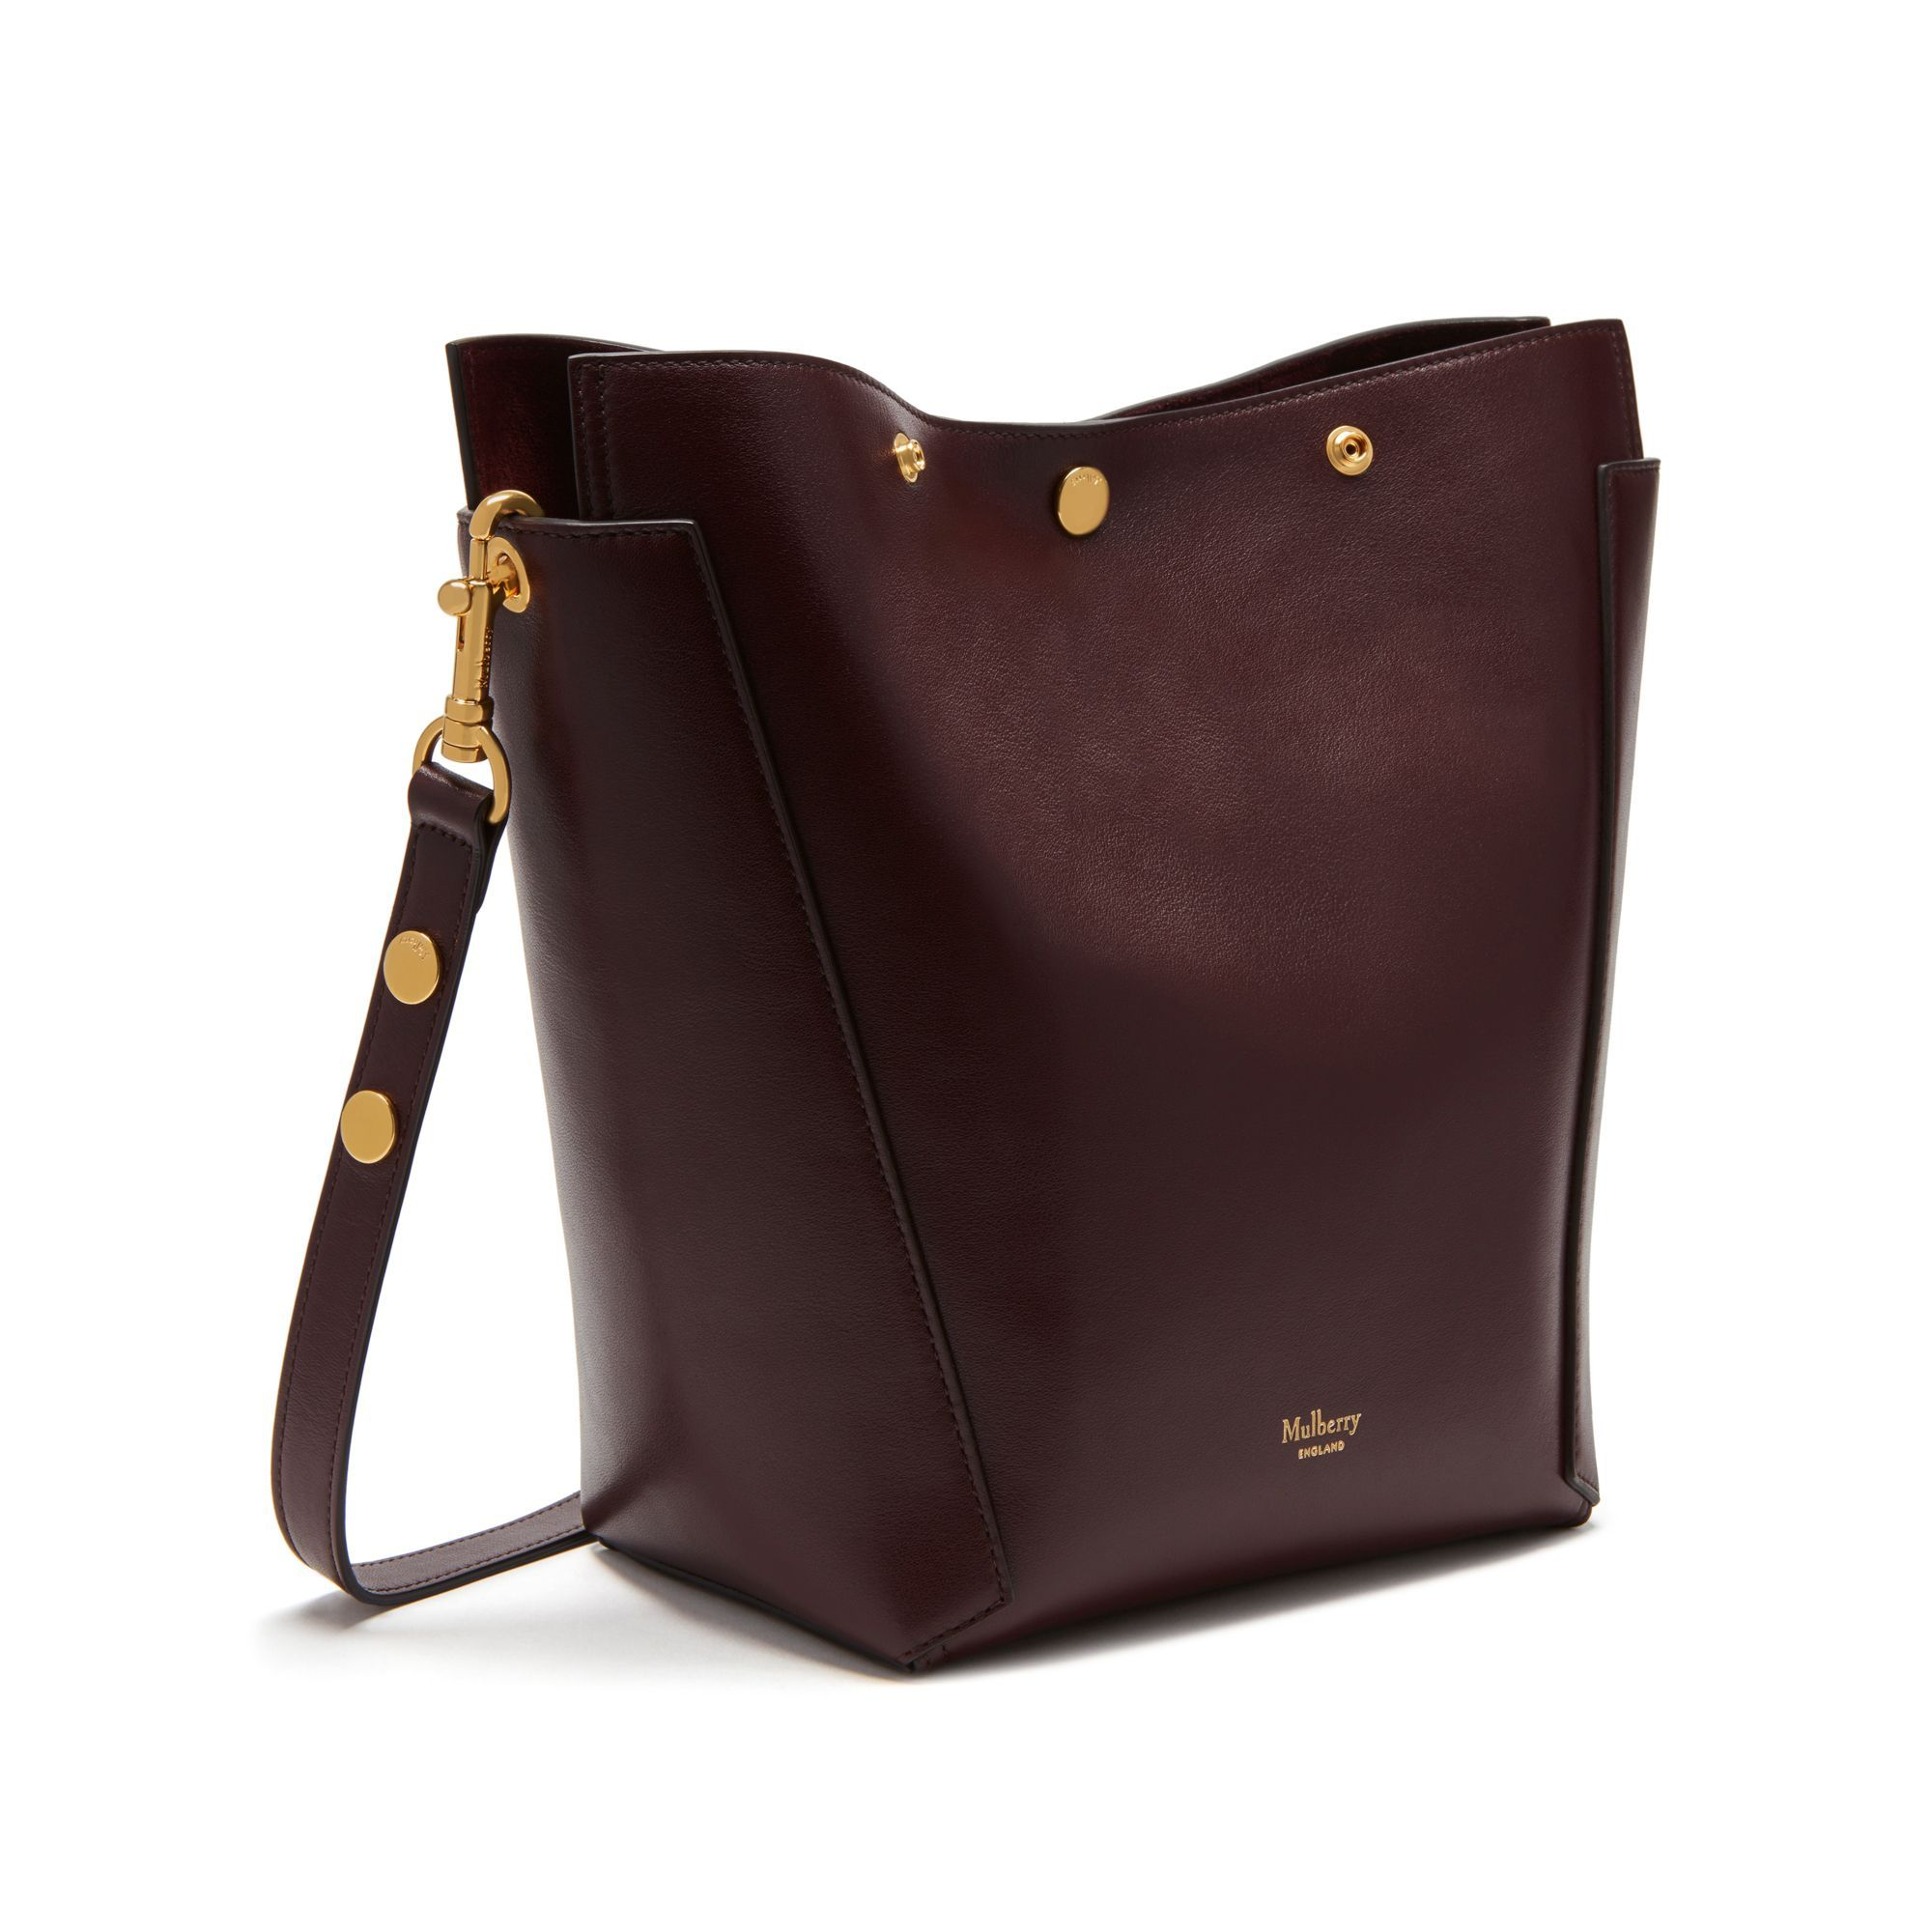 9695daf6fb Shop the Small Camden in Oxblood Smooth Calf Leather at Mulberry.com.  Introducing the Small Camden. First introduced last season